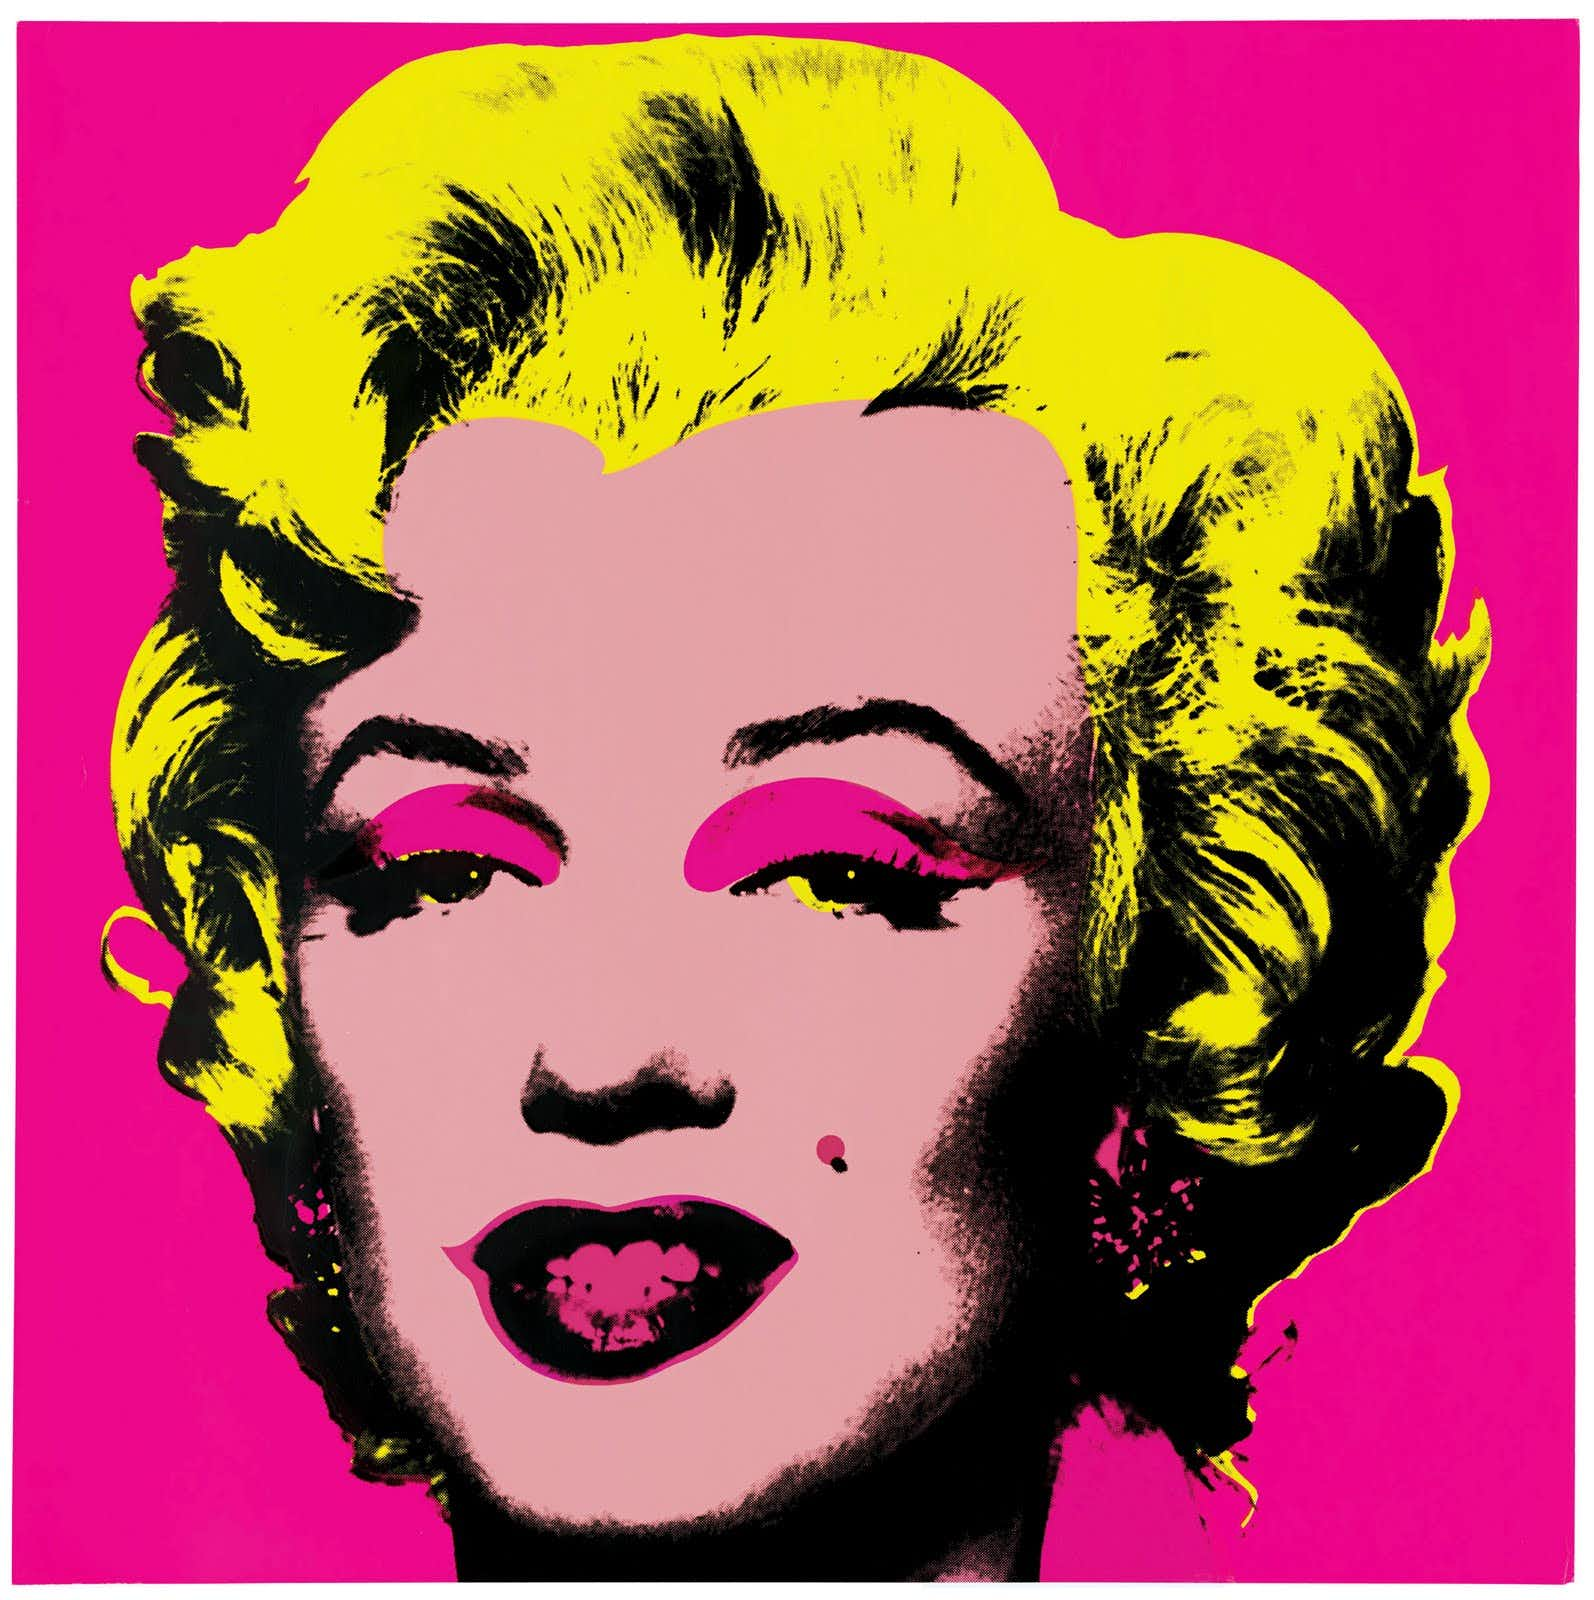 Andy warhol color.jpg?ixlib=rails 2.1